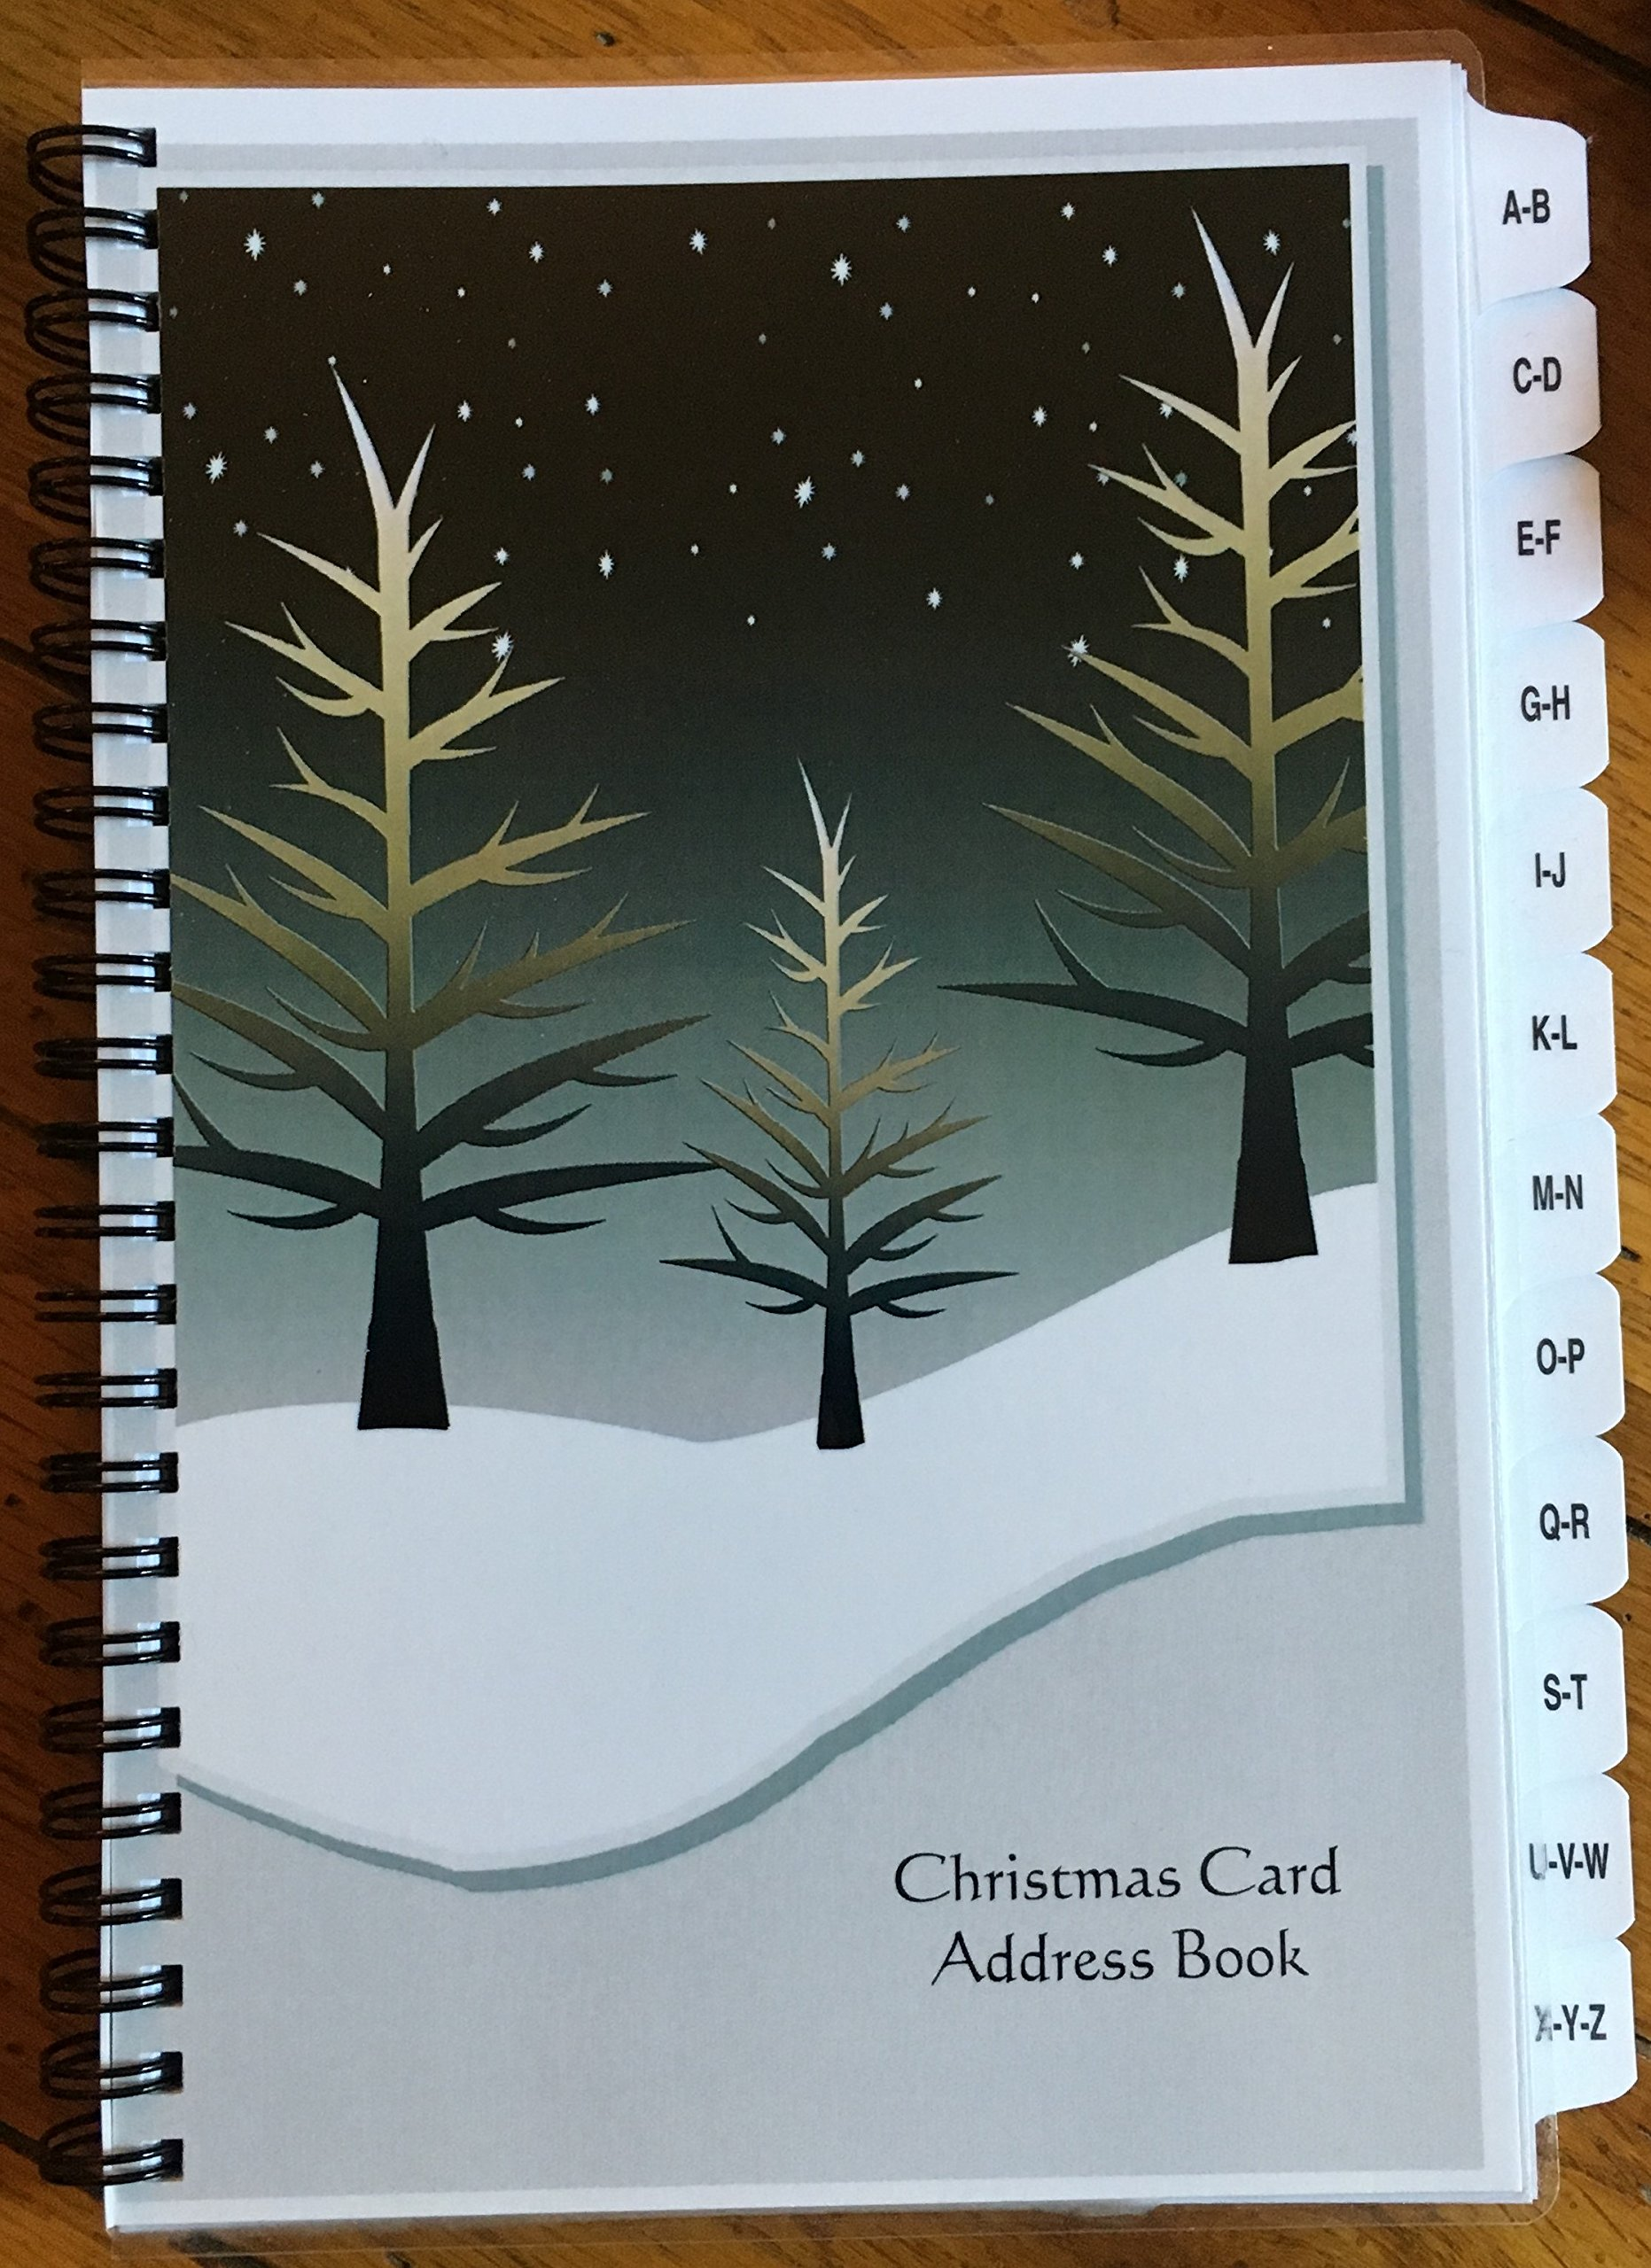 Christmas Card Address Book List Organizer with A-Z Tabs Winter Personalized Gift track 8 years by JDSeals (Image #1)